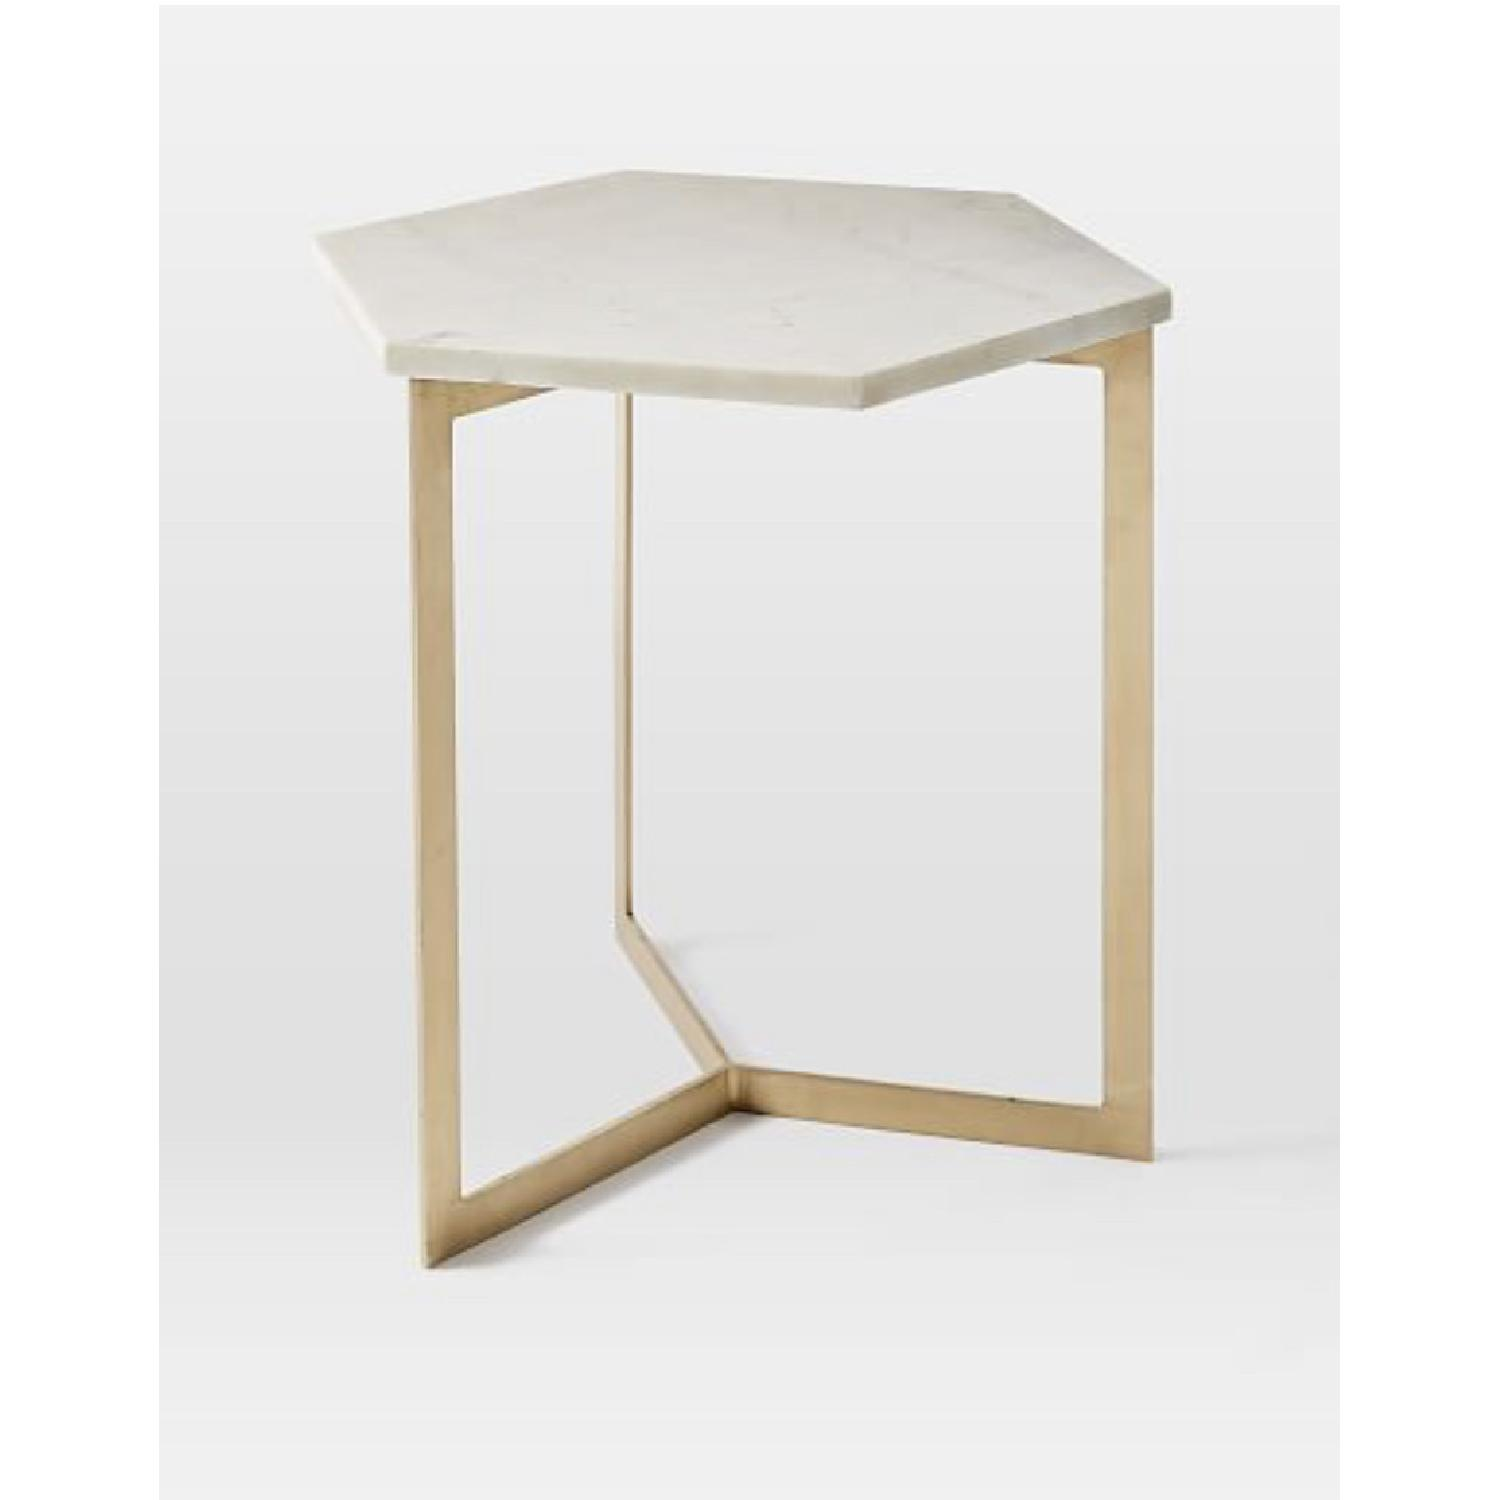 West Elm Hex Tables in Marble Antique Brass - image-1